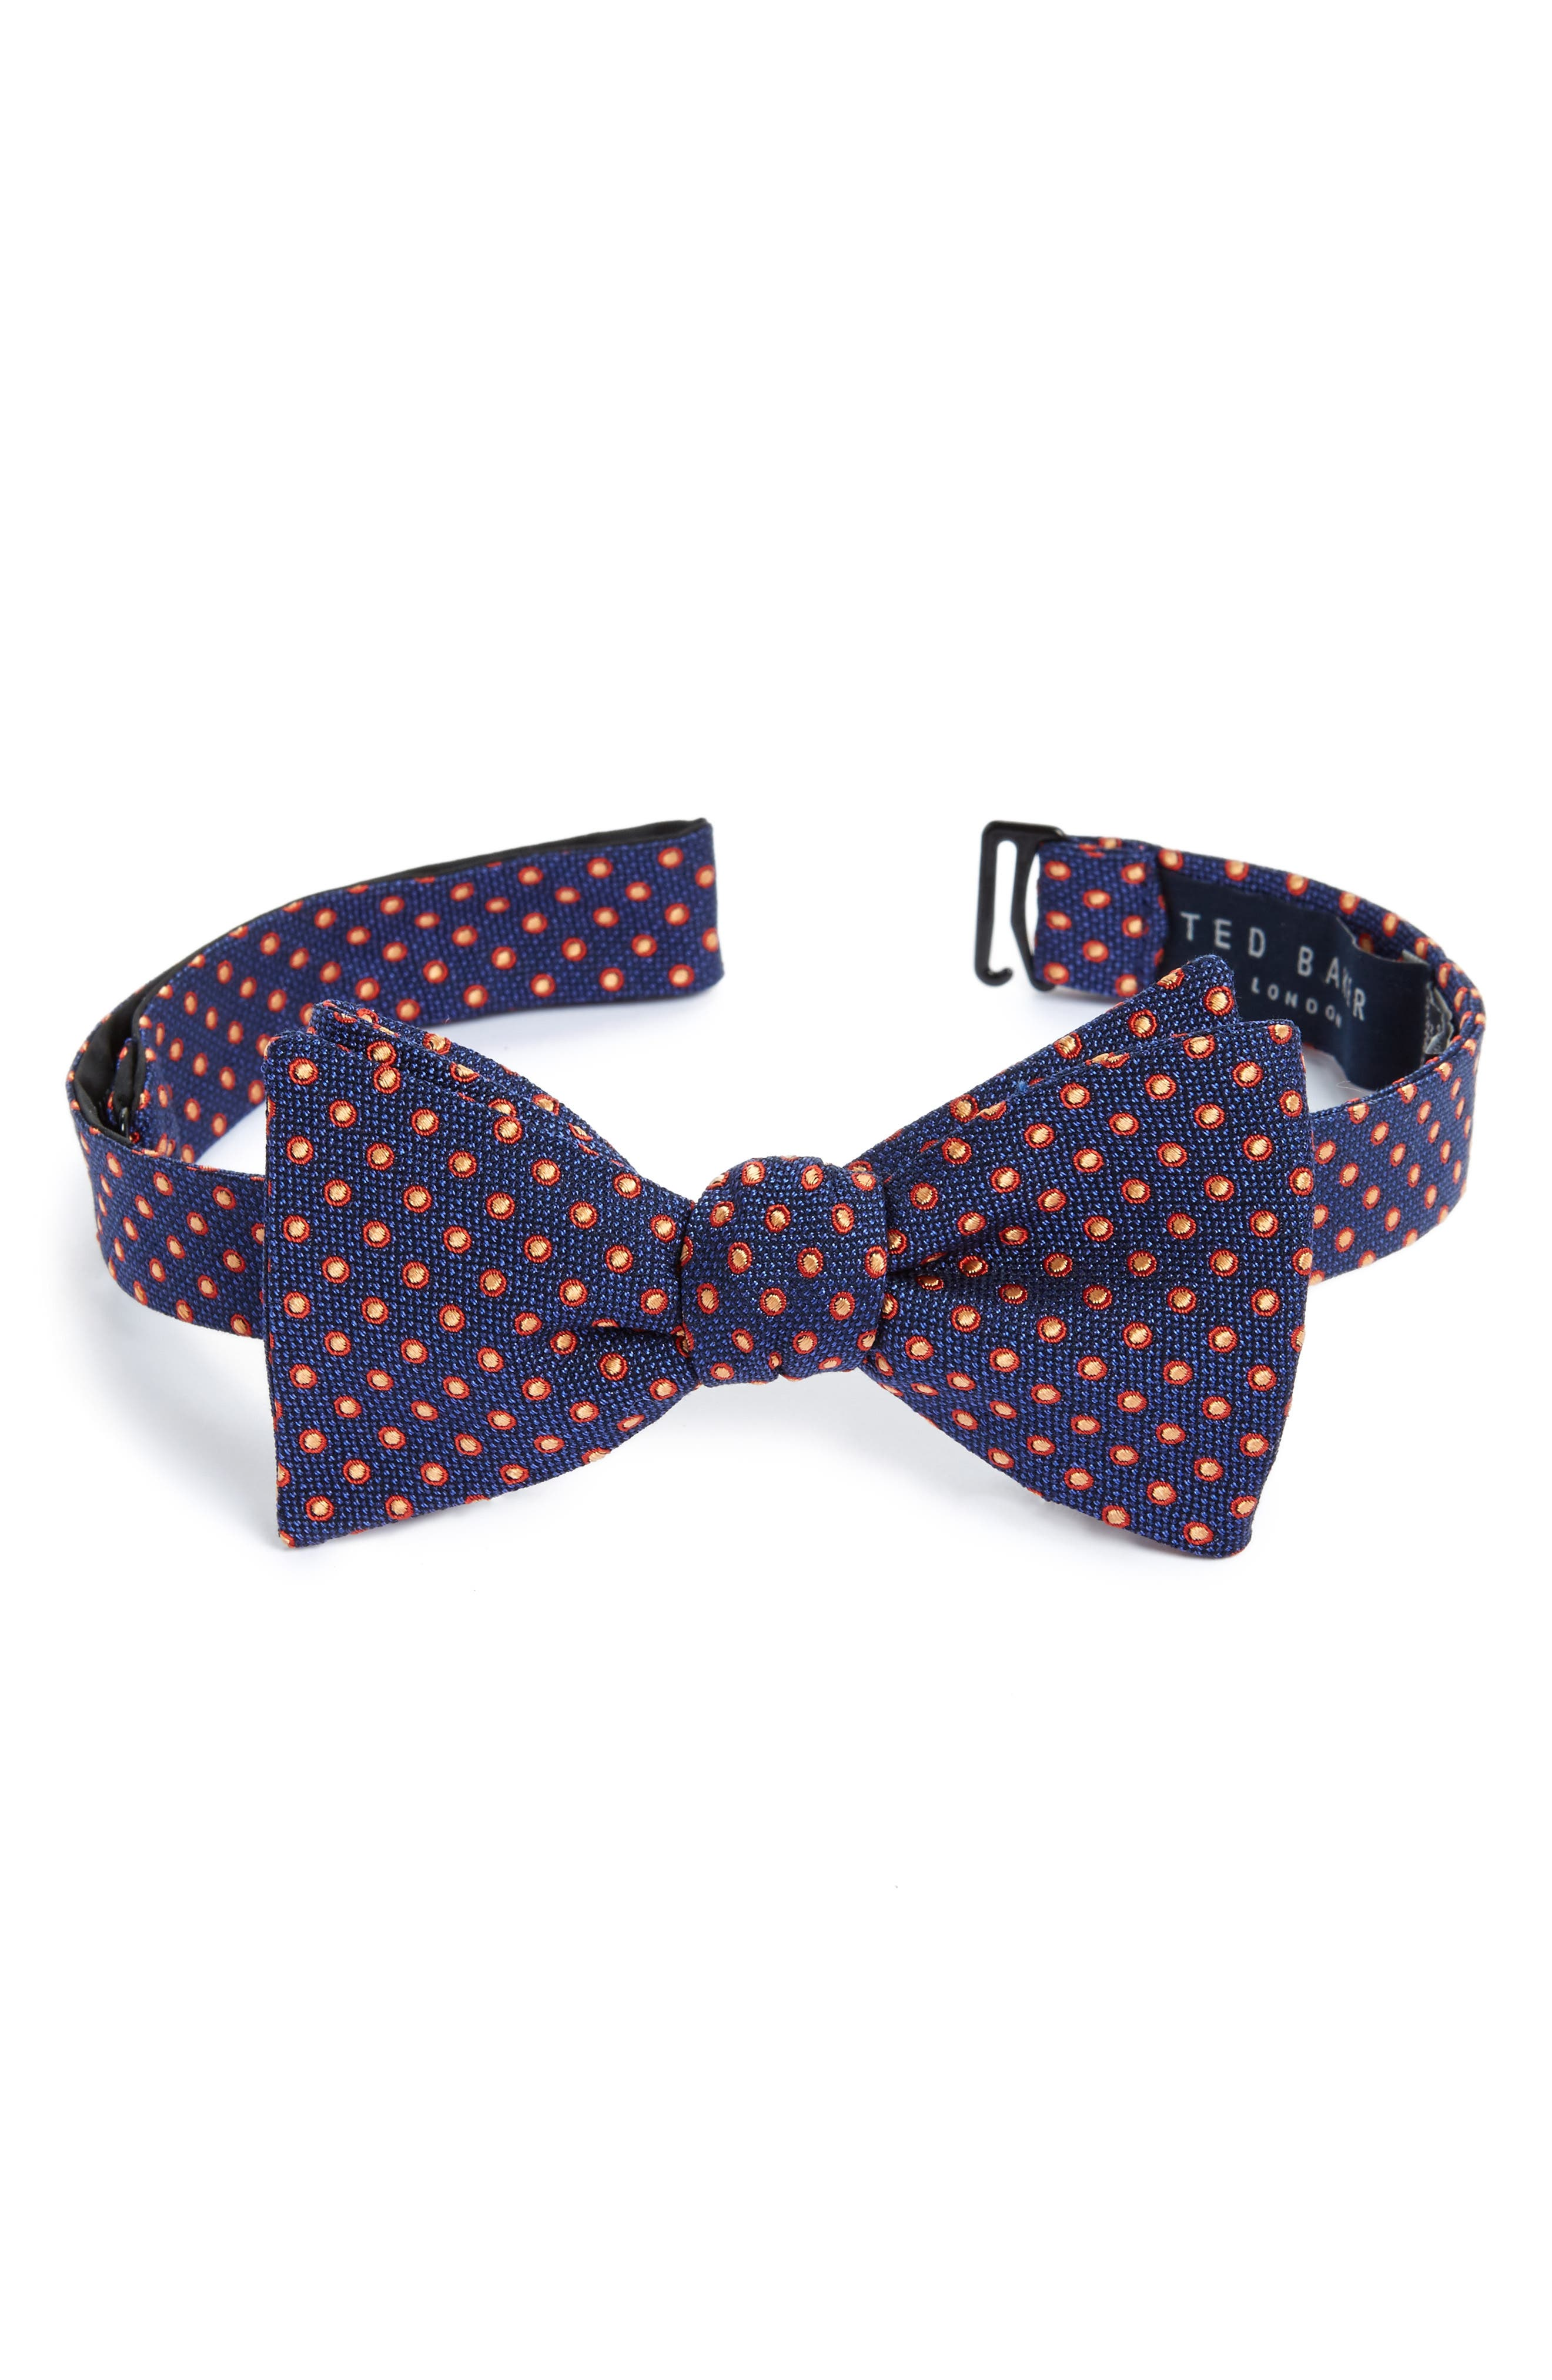 Main Image - Ted Baker London Fancy Dots Silk & Cotton Bow Tie